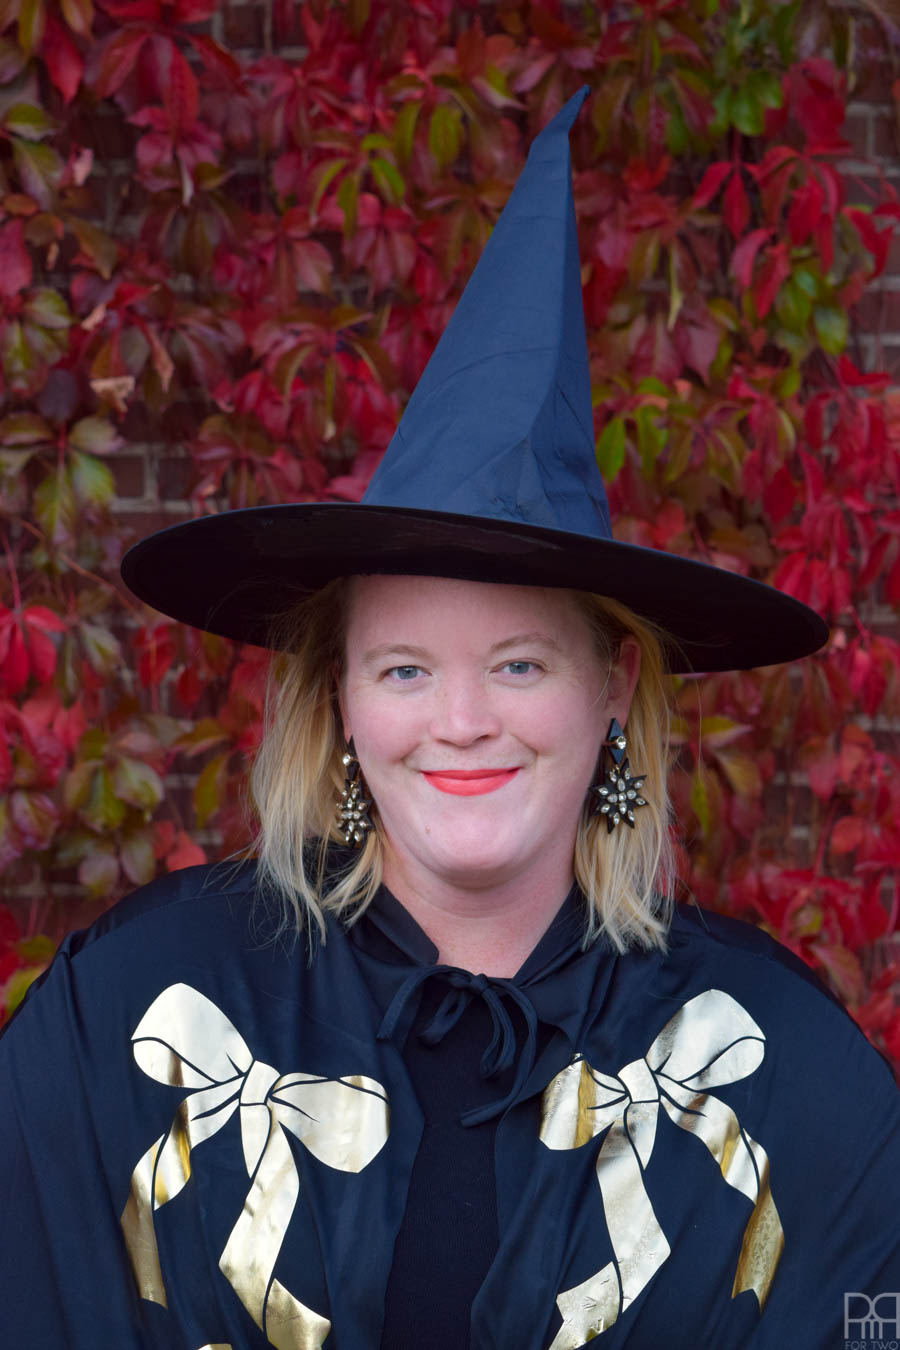 close up of woman in witch halloween costume